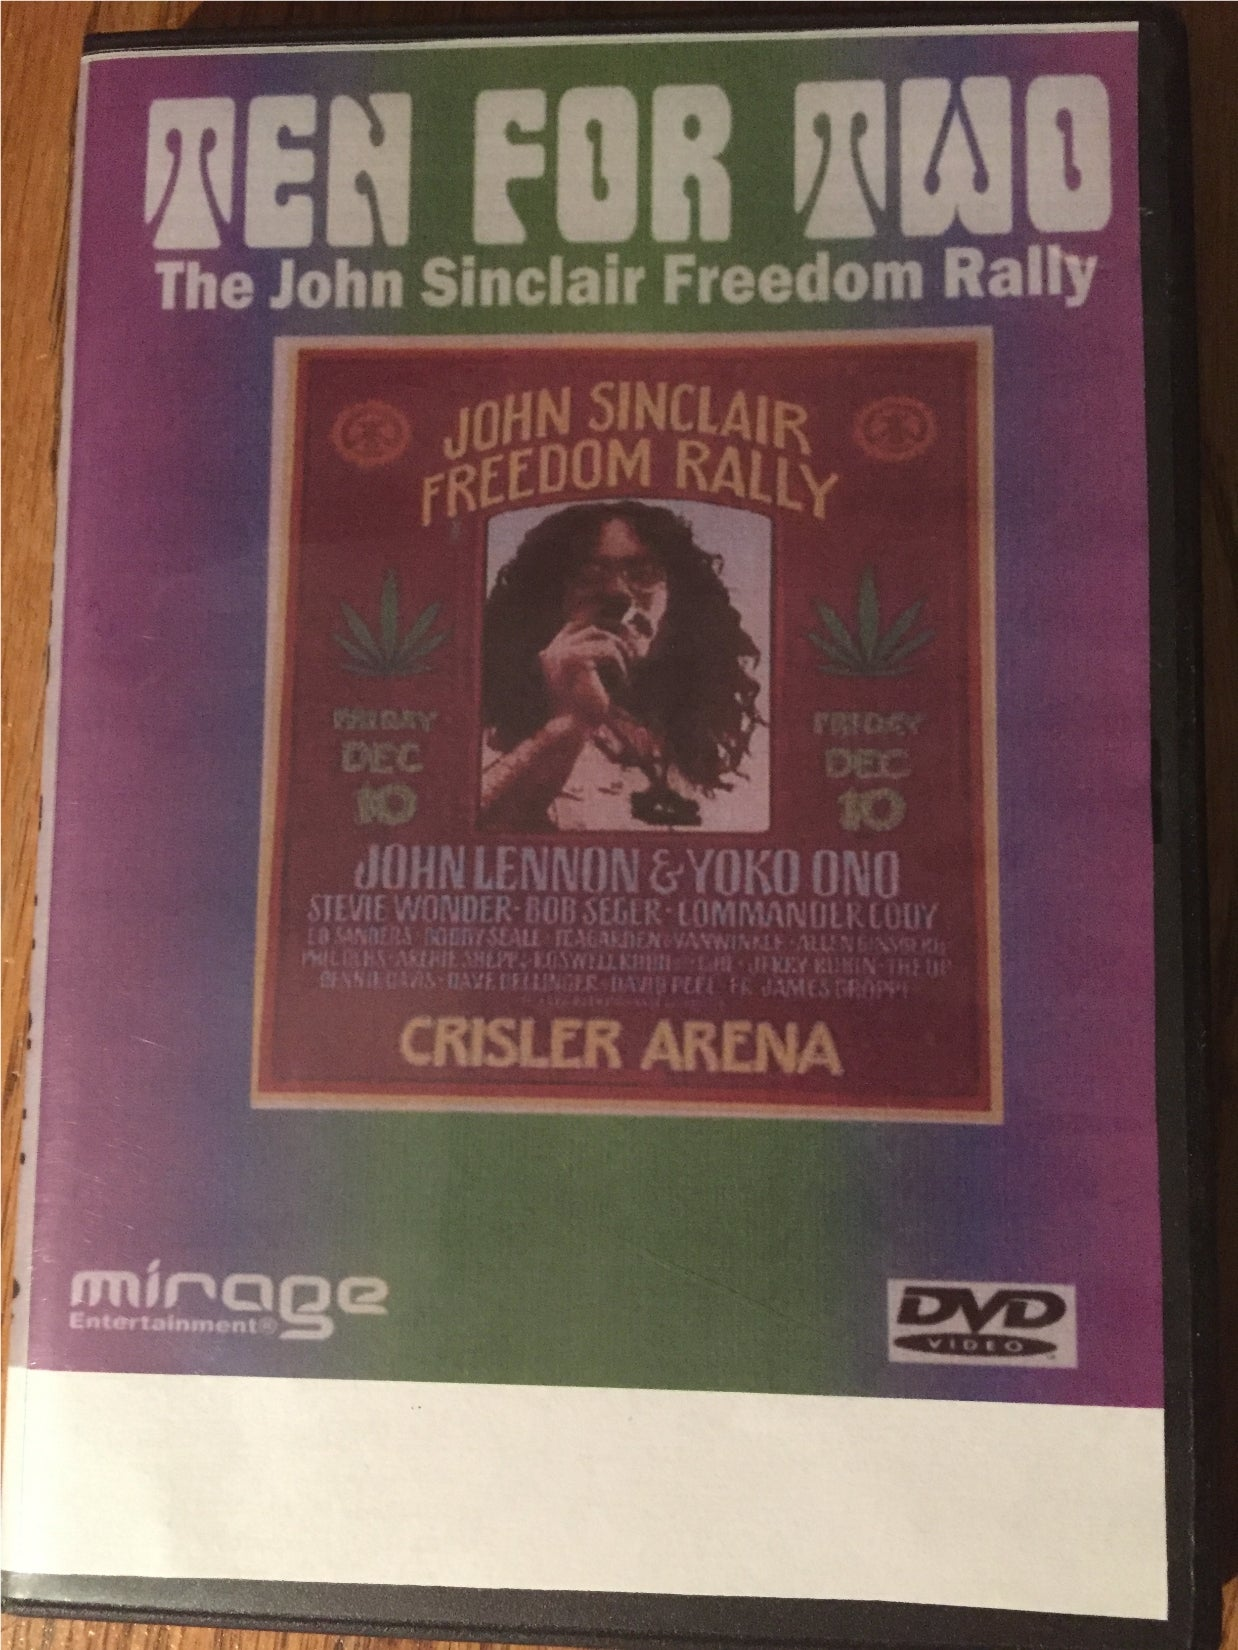 Ten For Two John Sinclair Freedom Rally DVD